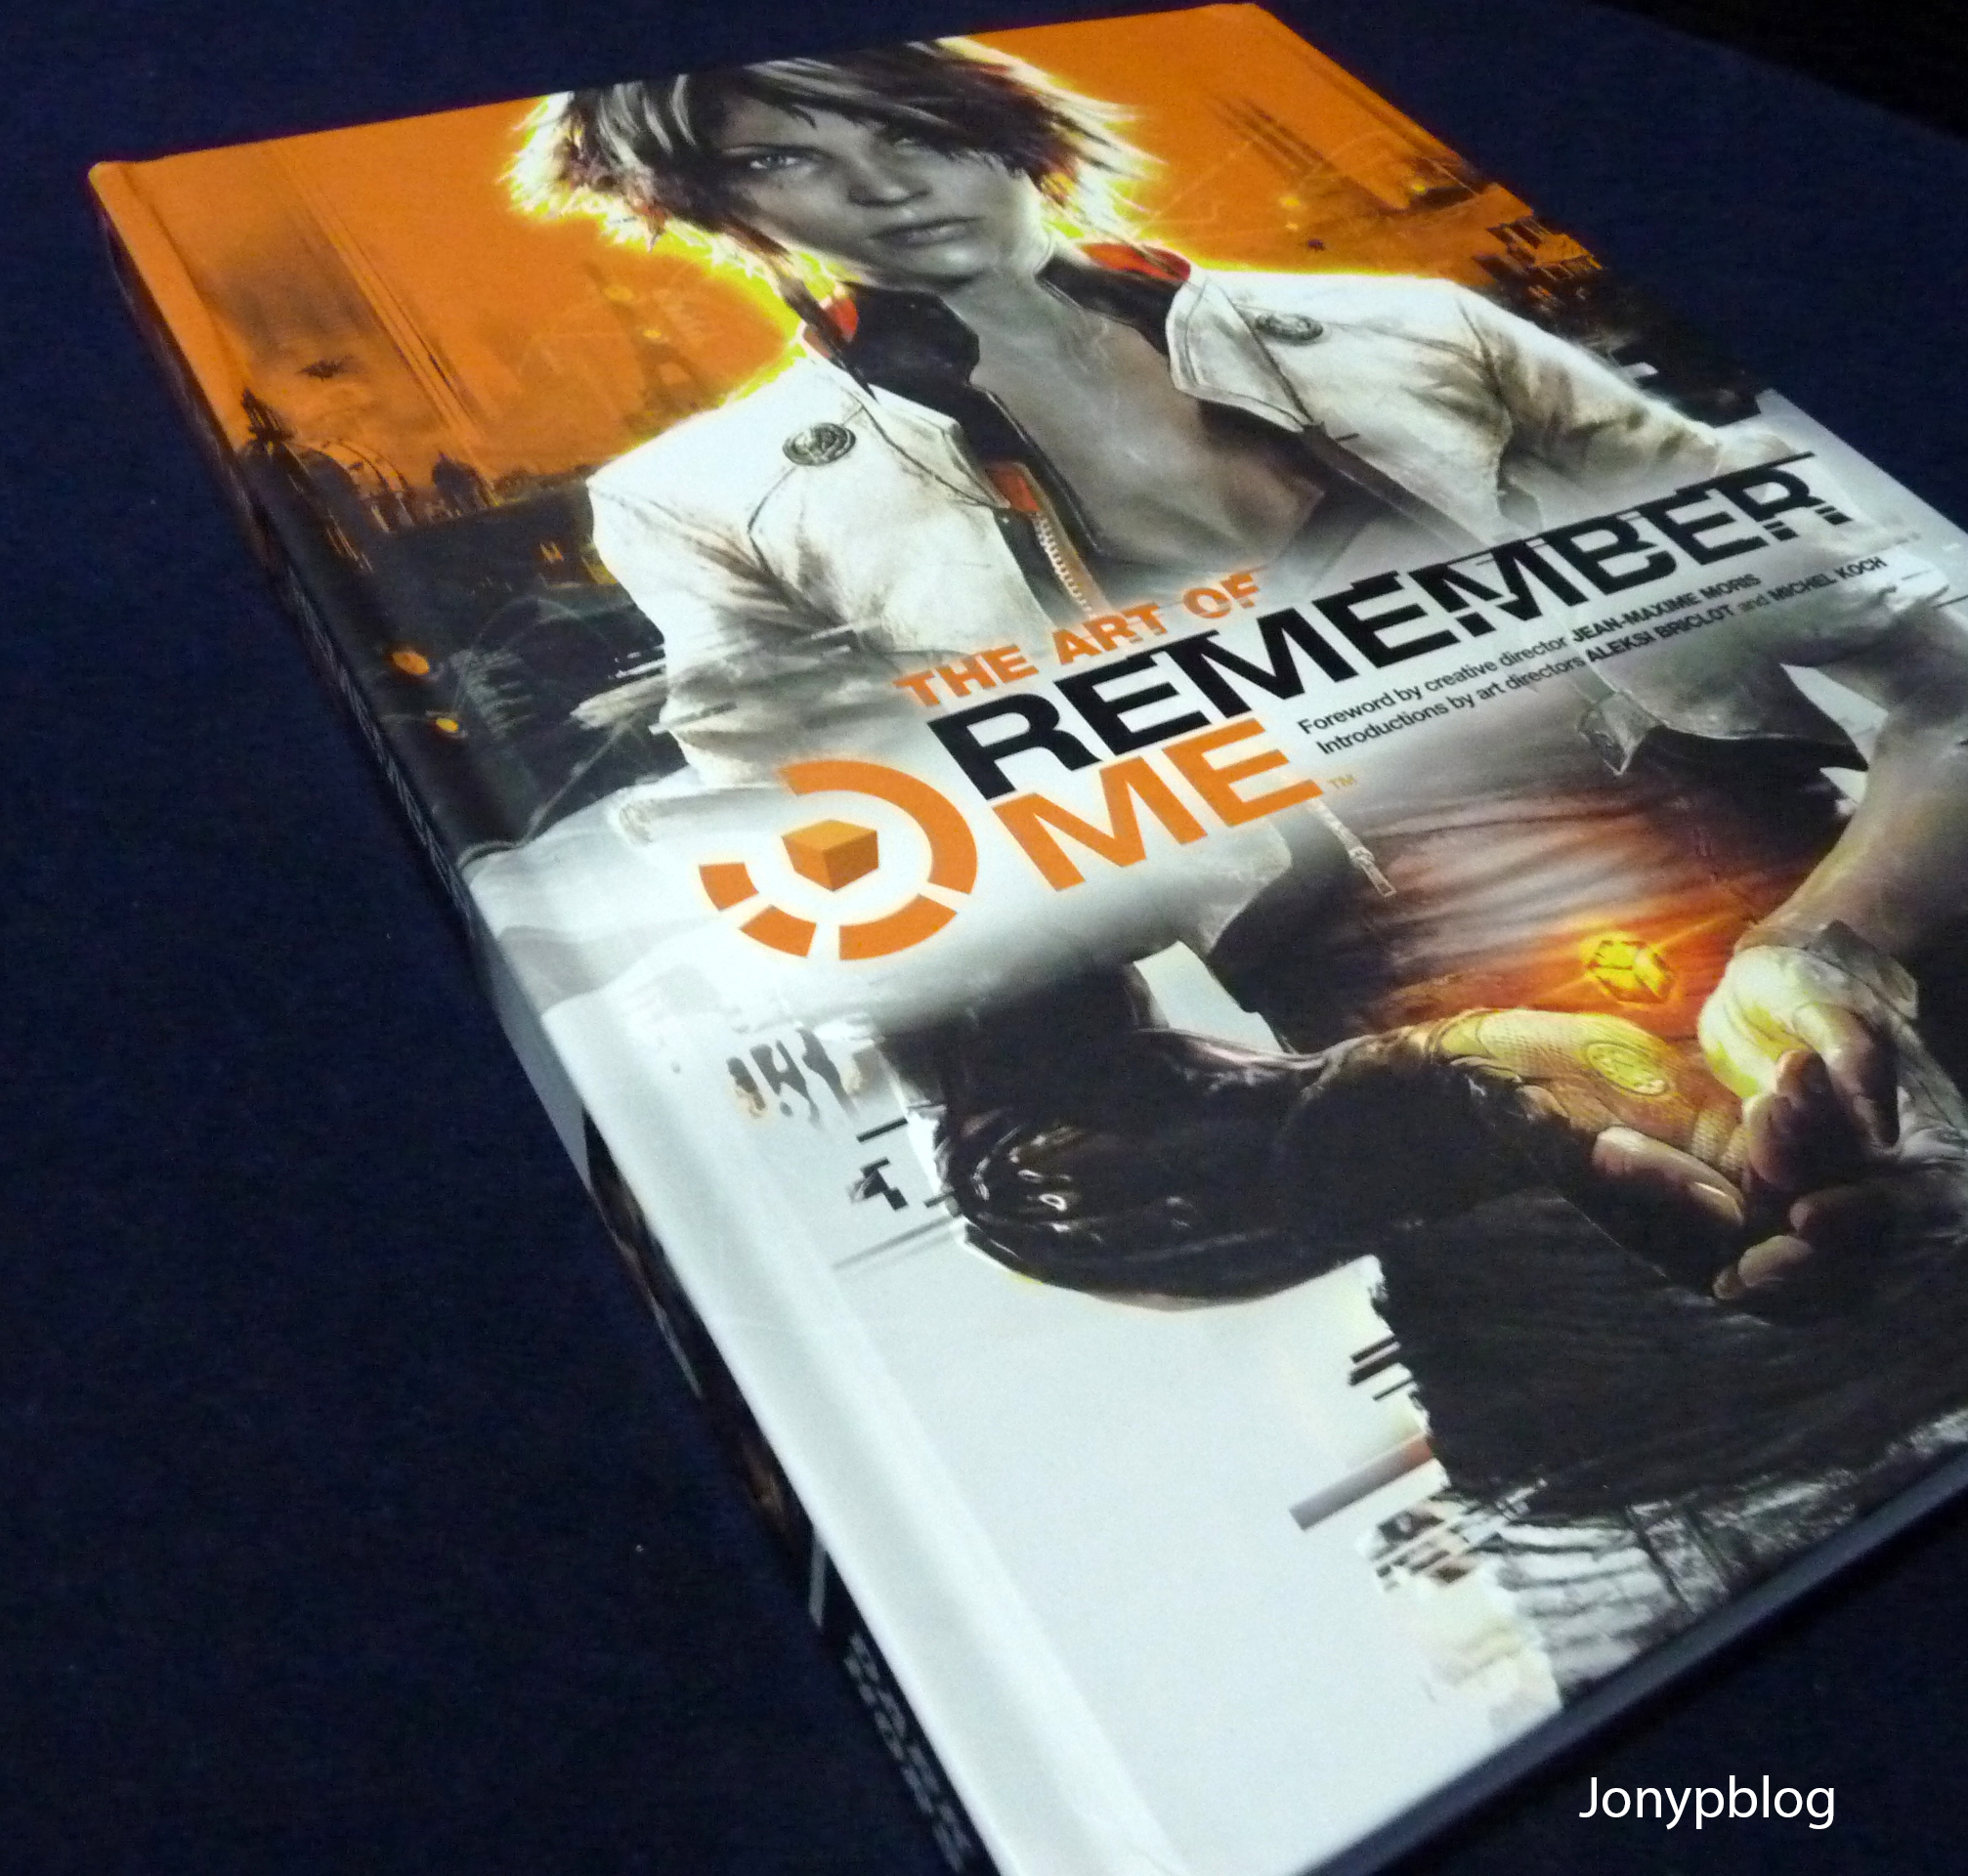 Remember Libro Reseña The Art Of Remember Me Jonypblog